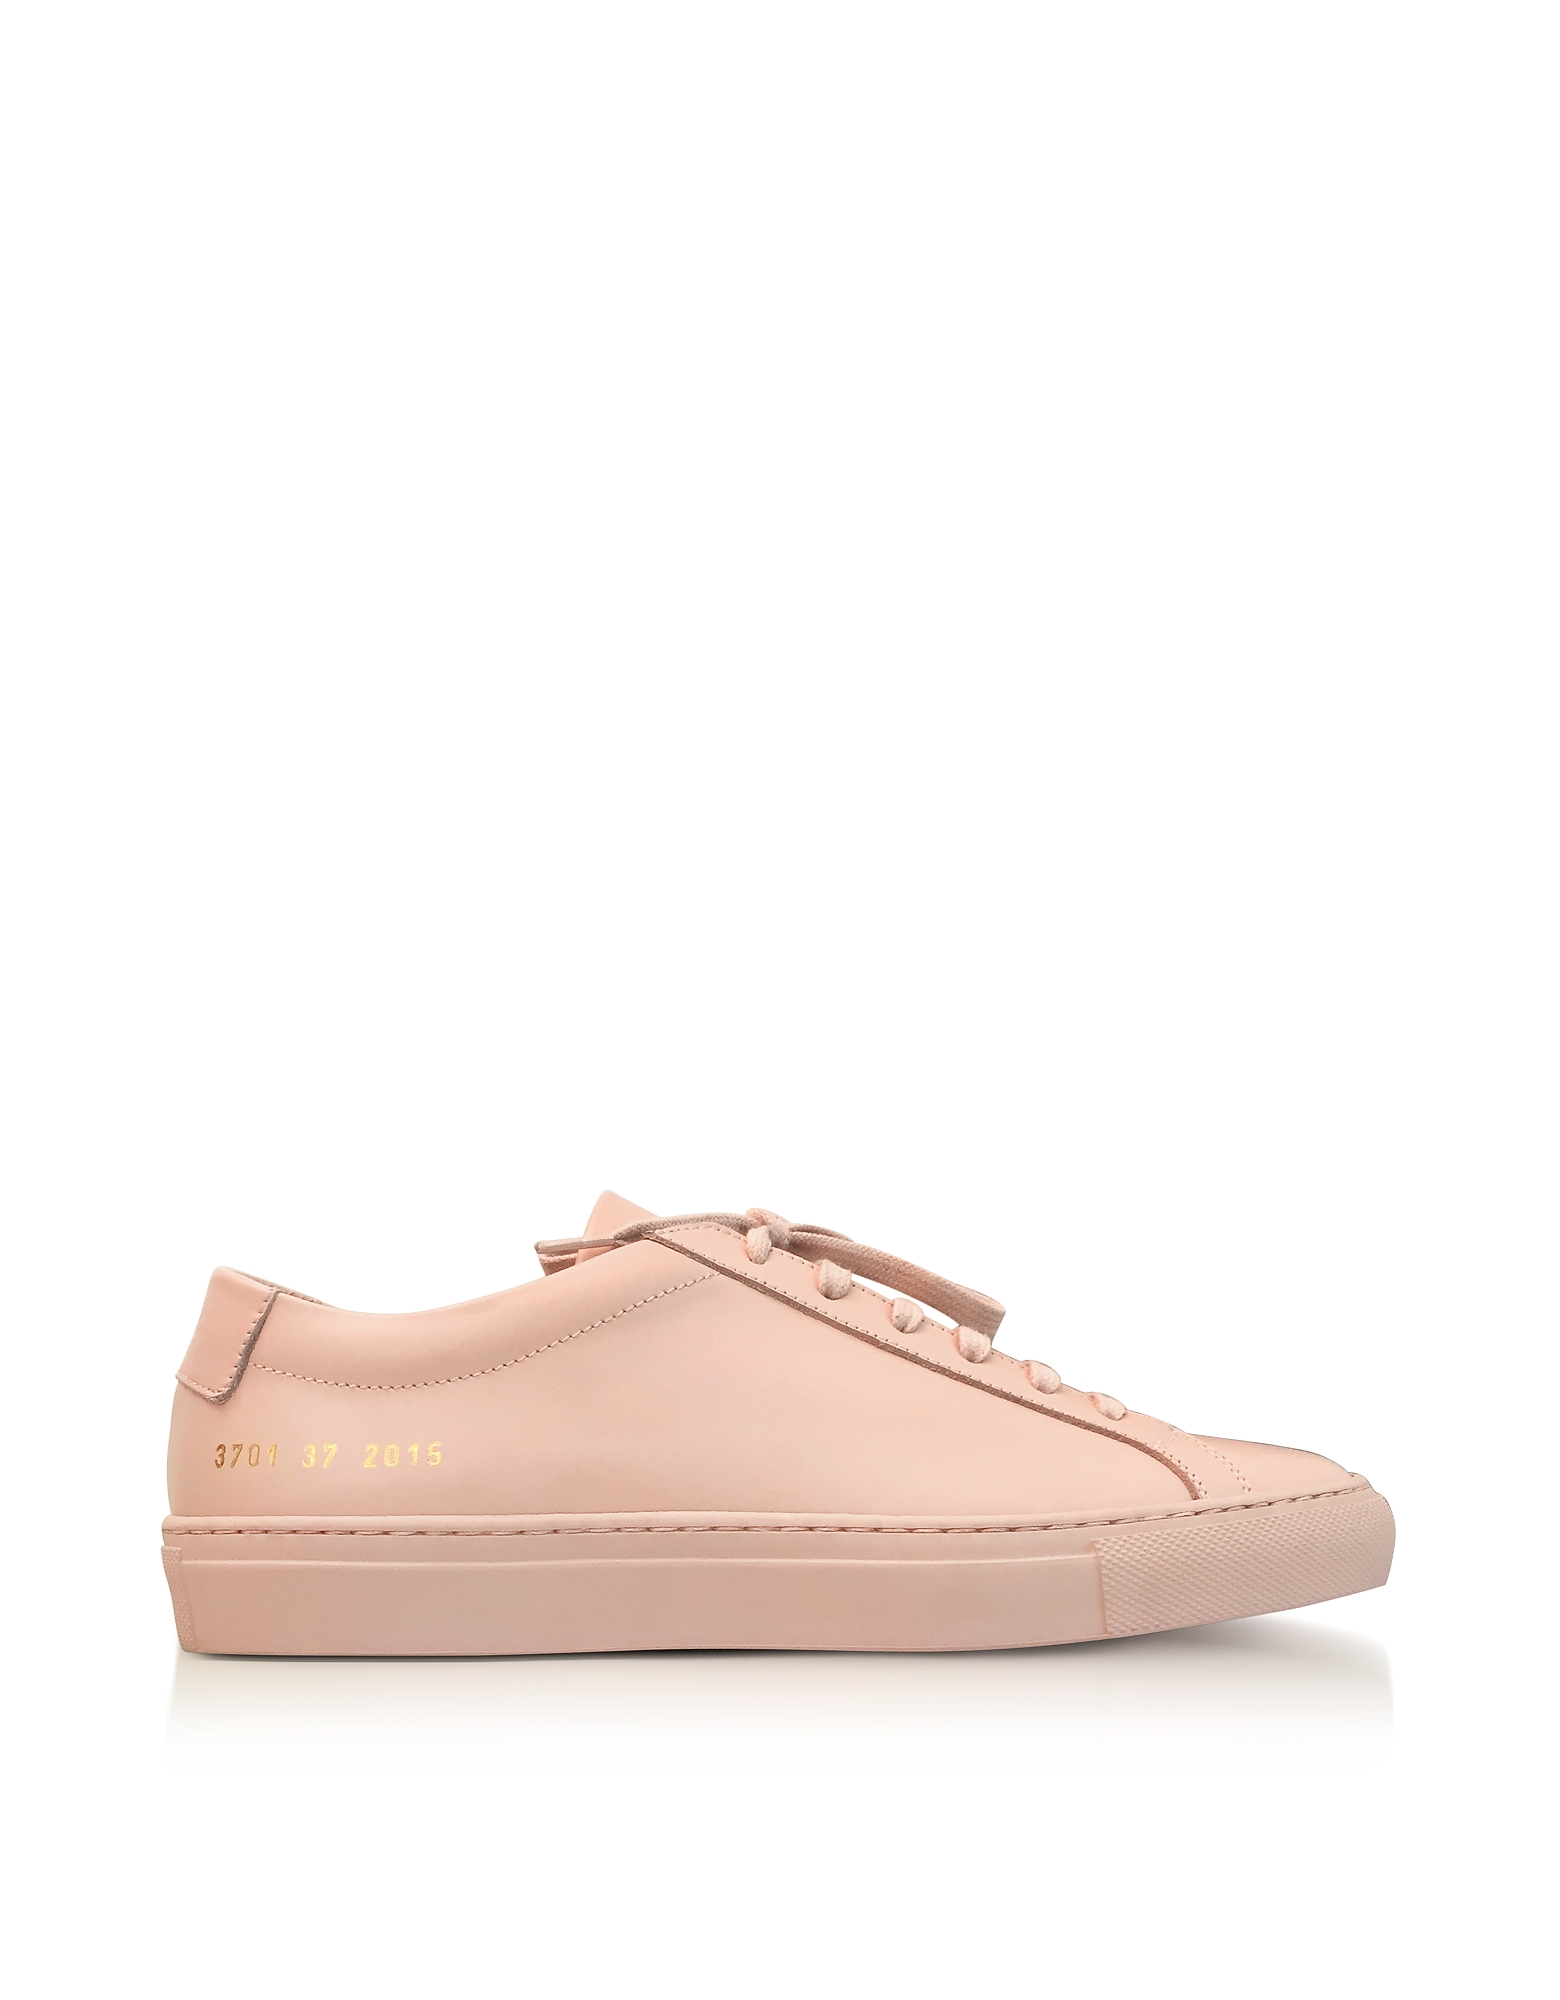 Common Projects Shoes, Blush Leather Achilles Original Low Top Women's Sneakers